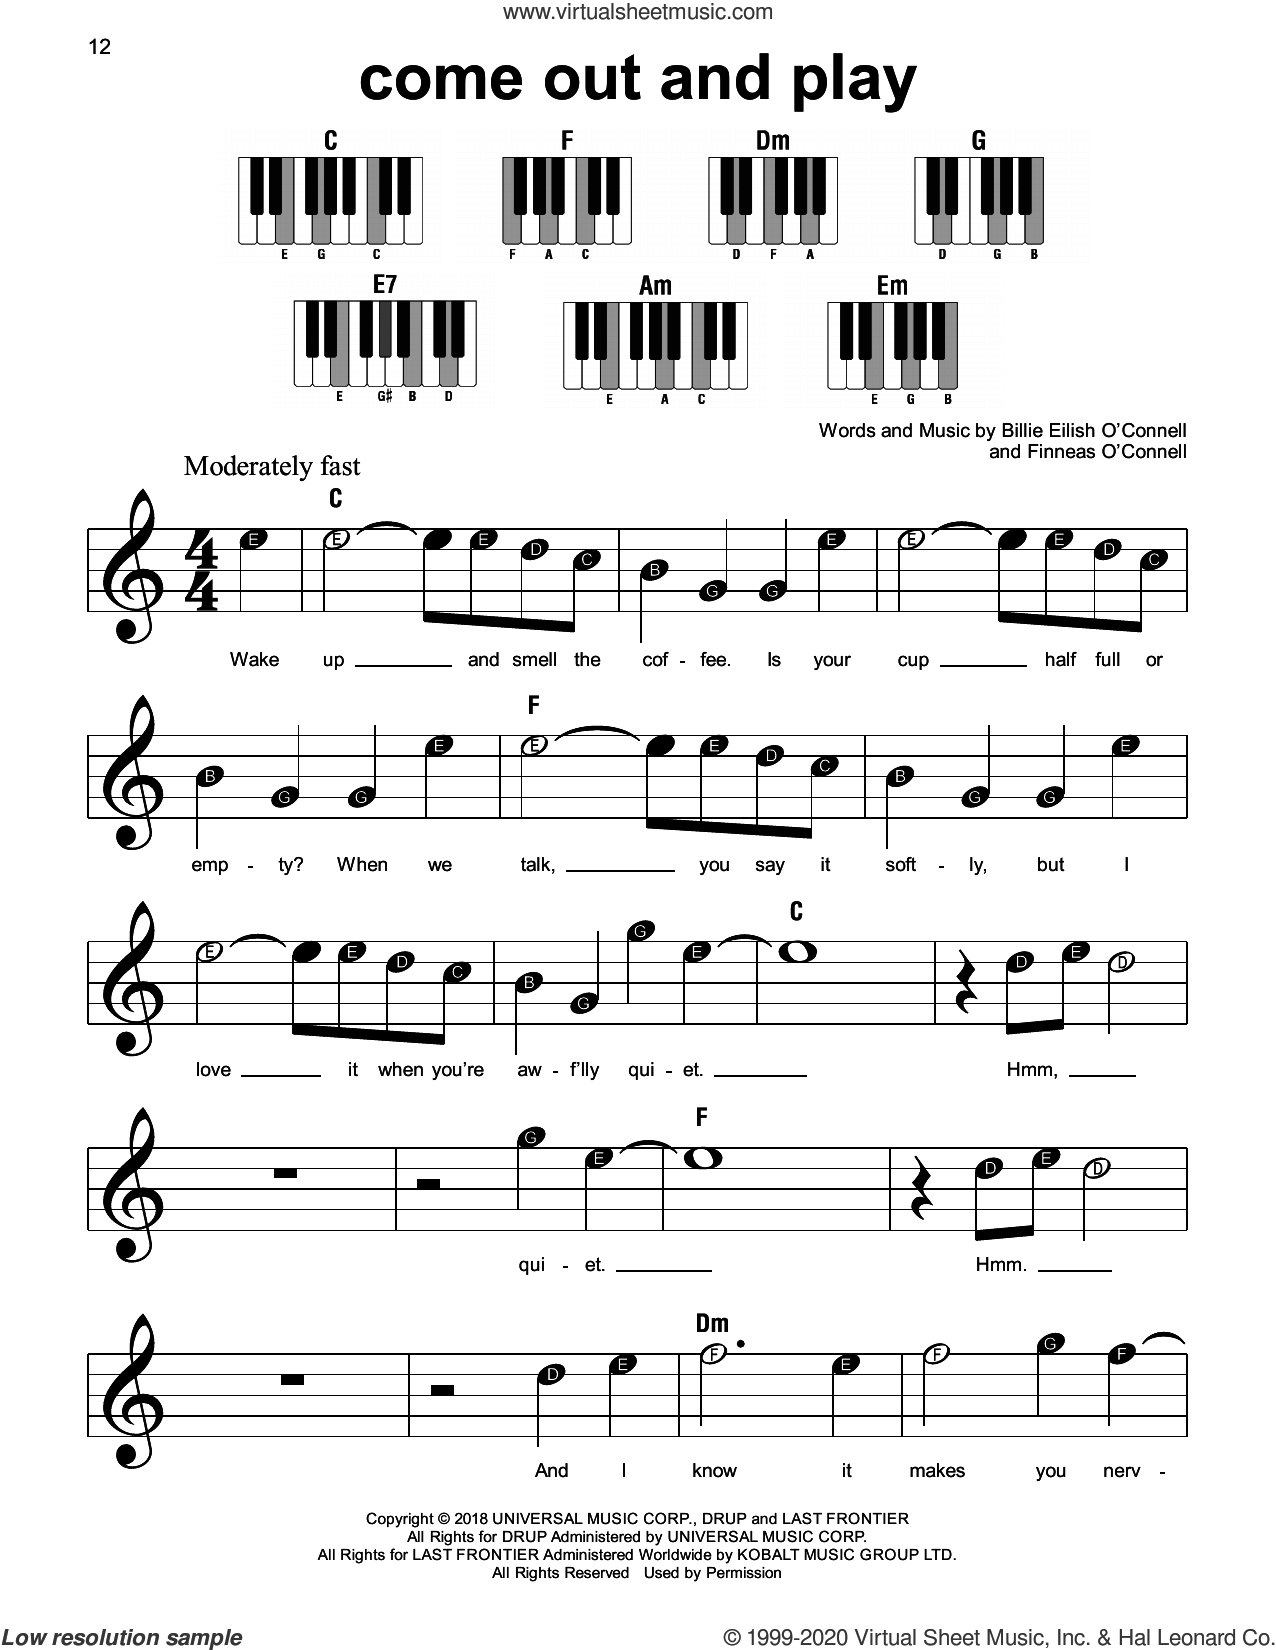 come out and play sheet music for piano solo by Billie Eilish, beginner skill level